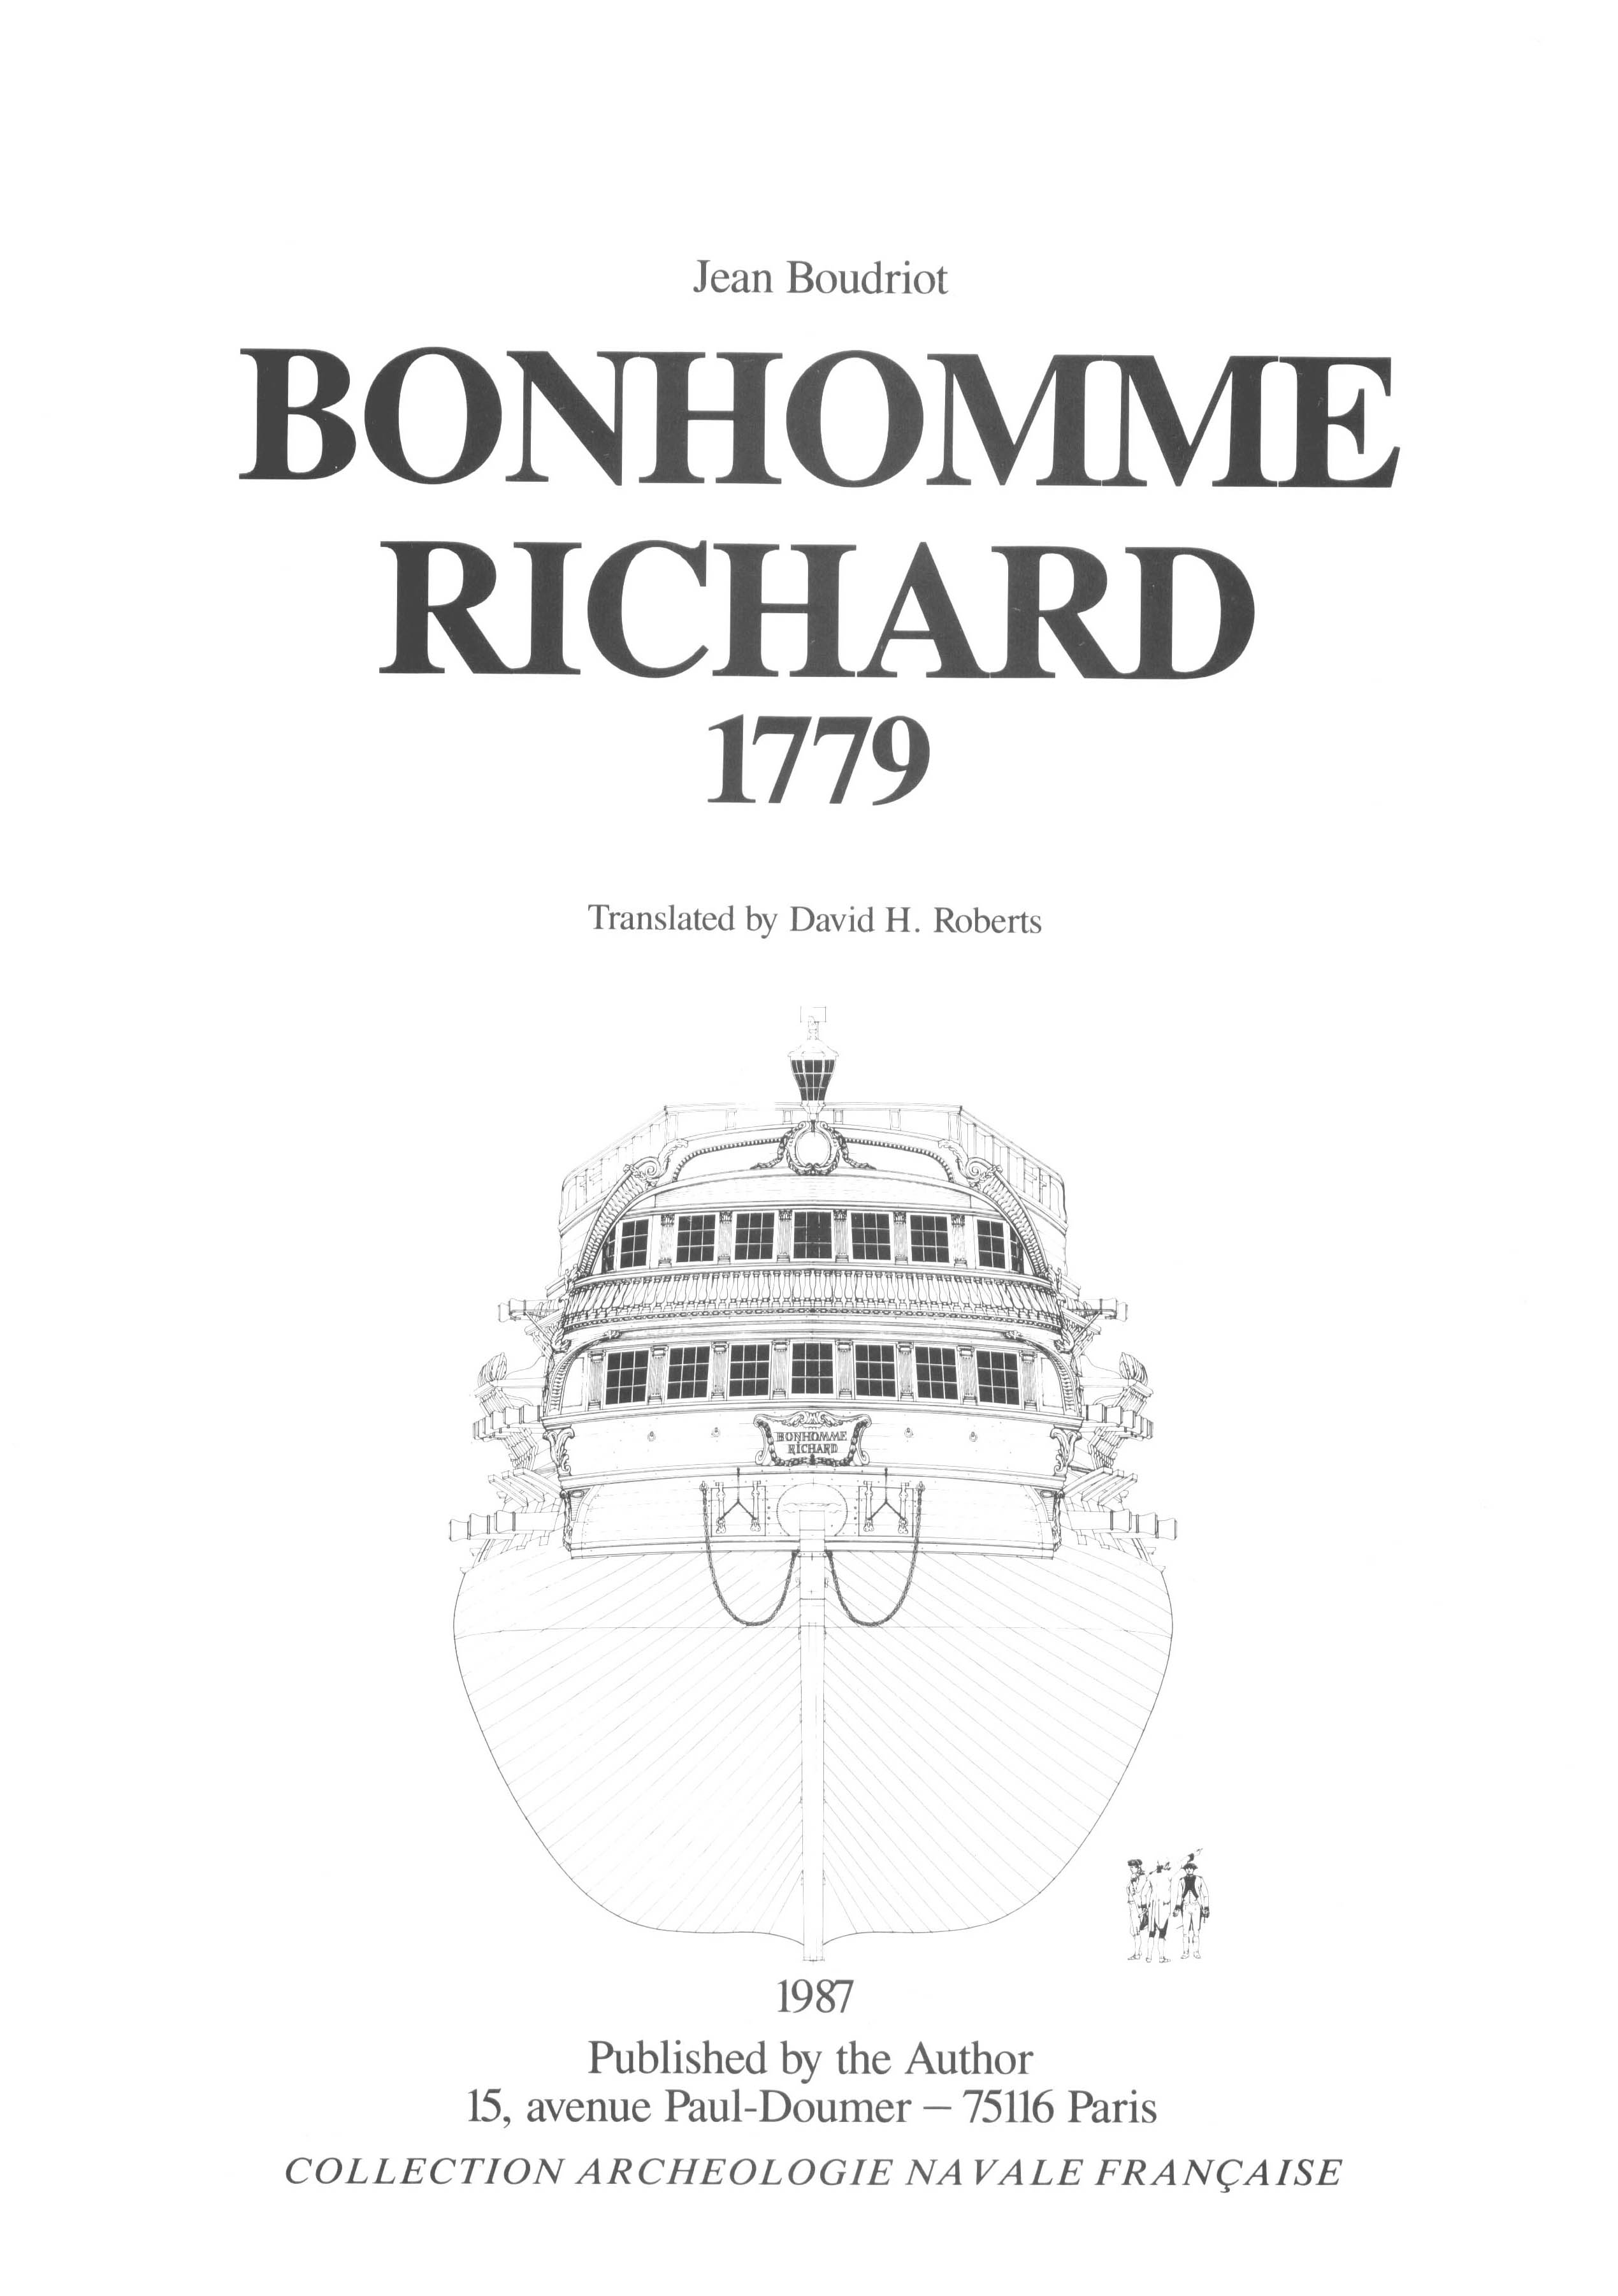 Страницы из Jean Boudriot Publications - A Privateer's Vessel Bonhomme Richard 1779 (Ancre).jpg